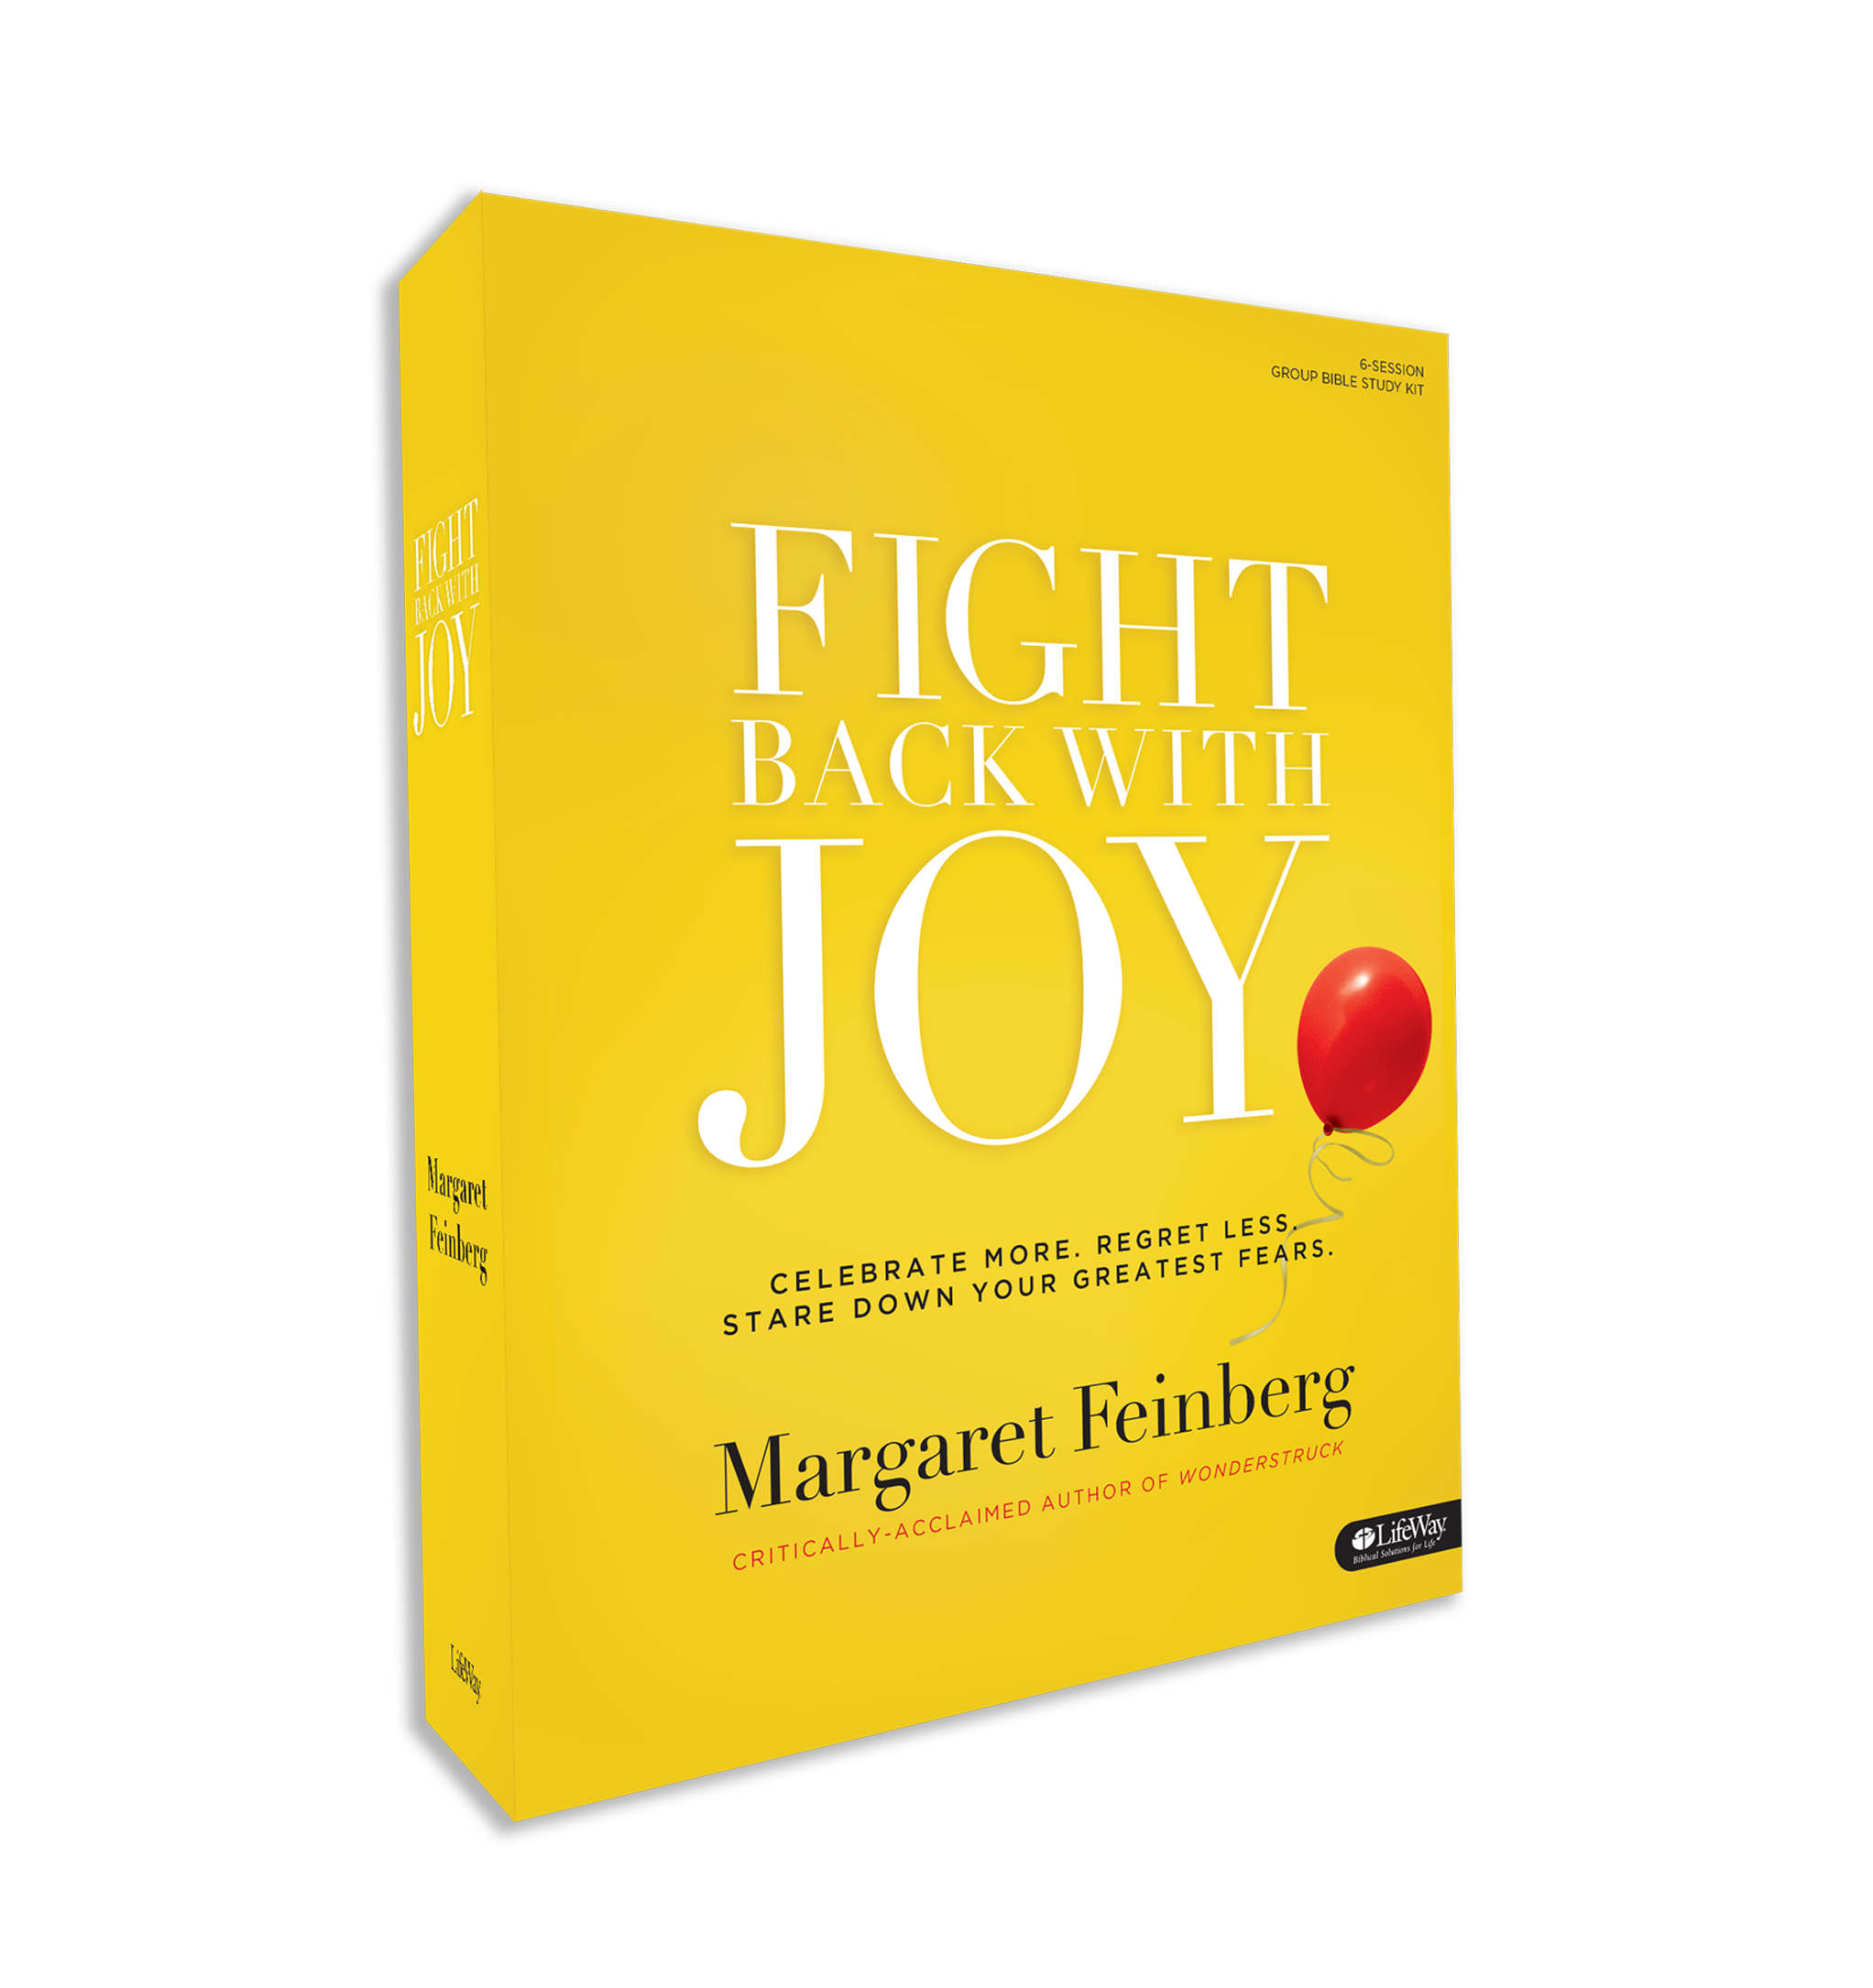 Leading a group through Fight Back With Joy? Check out these free downloads  to help promote your Bible study, small group, or Sunday School class.